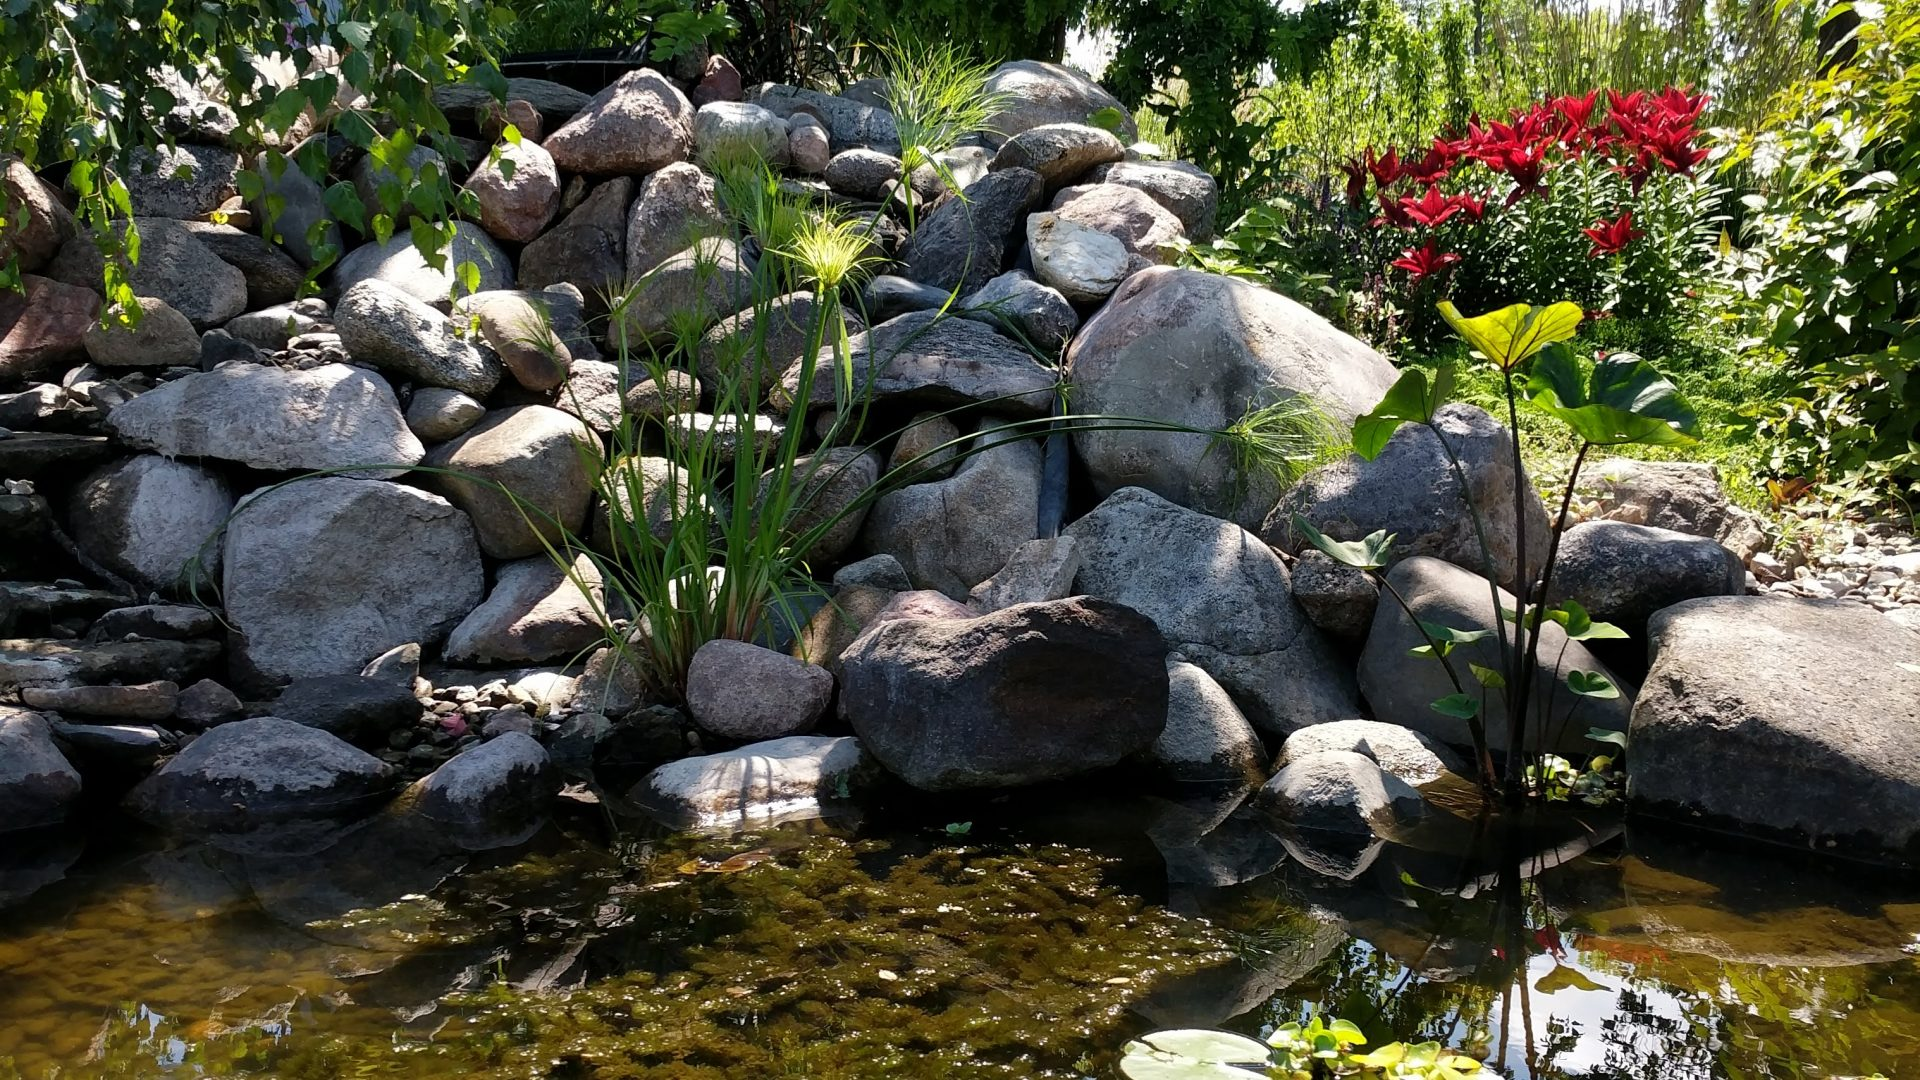 sunny day around pond with lily pads, water lettuce, lilies, and other beautiful pond plants